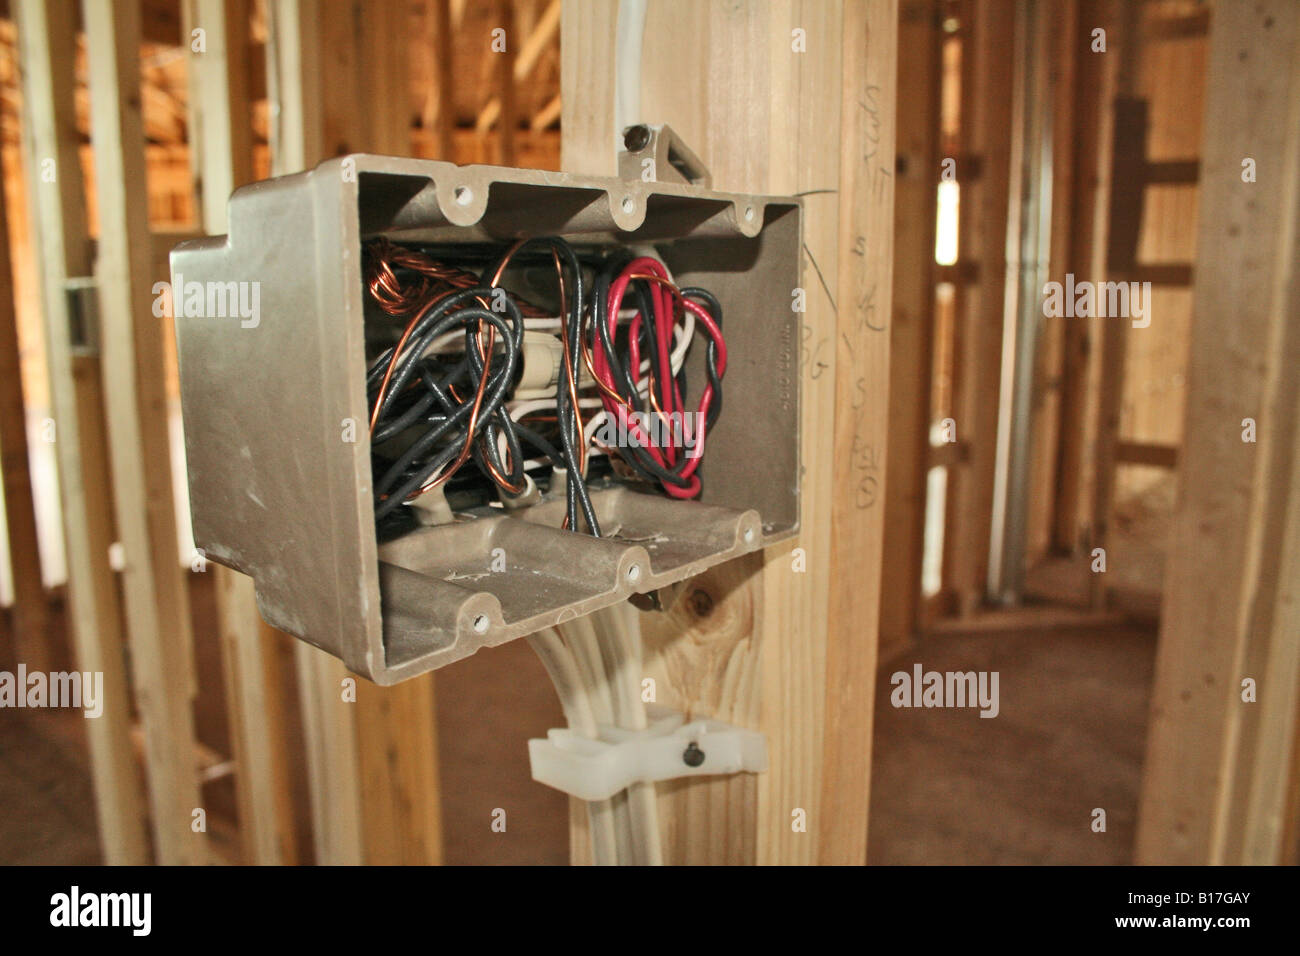 Electrical Outlet Wiring In New Home Construction Stock